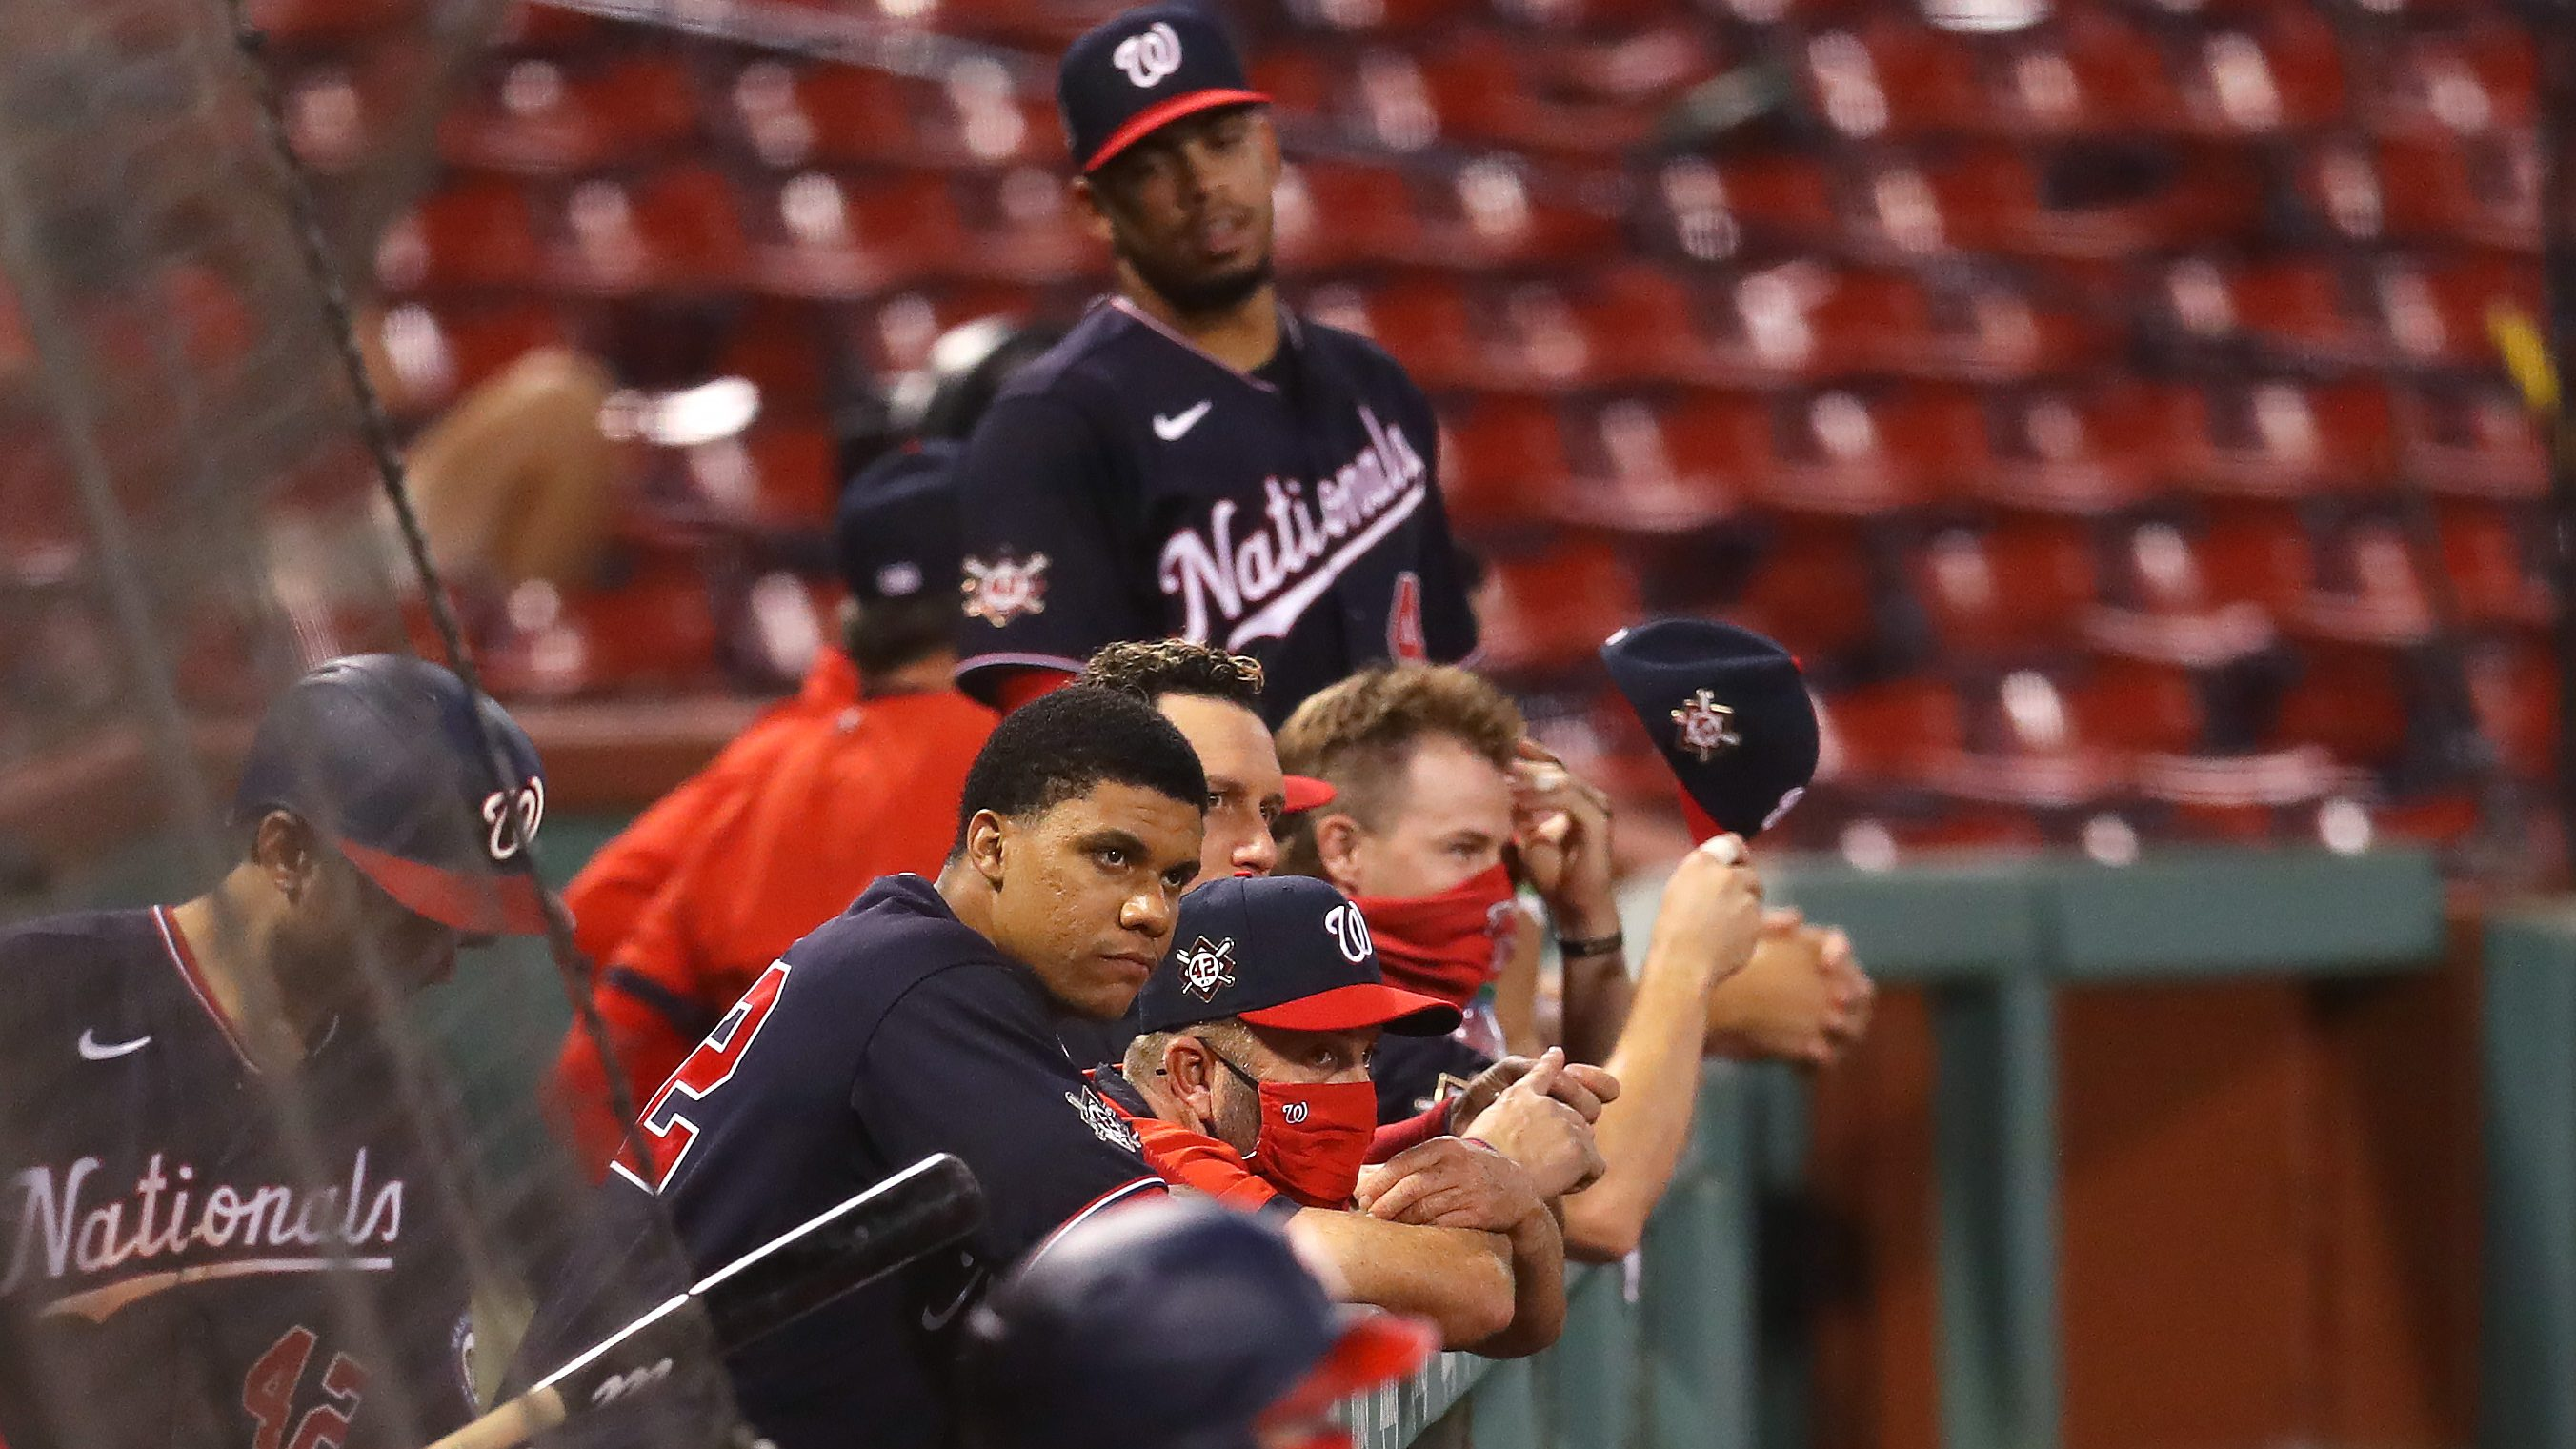 Washington Nationals players lean over the dugout railing during a game against the Boston Red Sox.